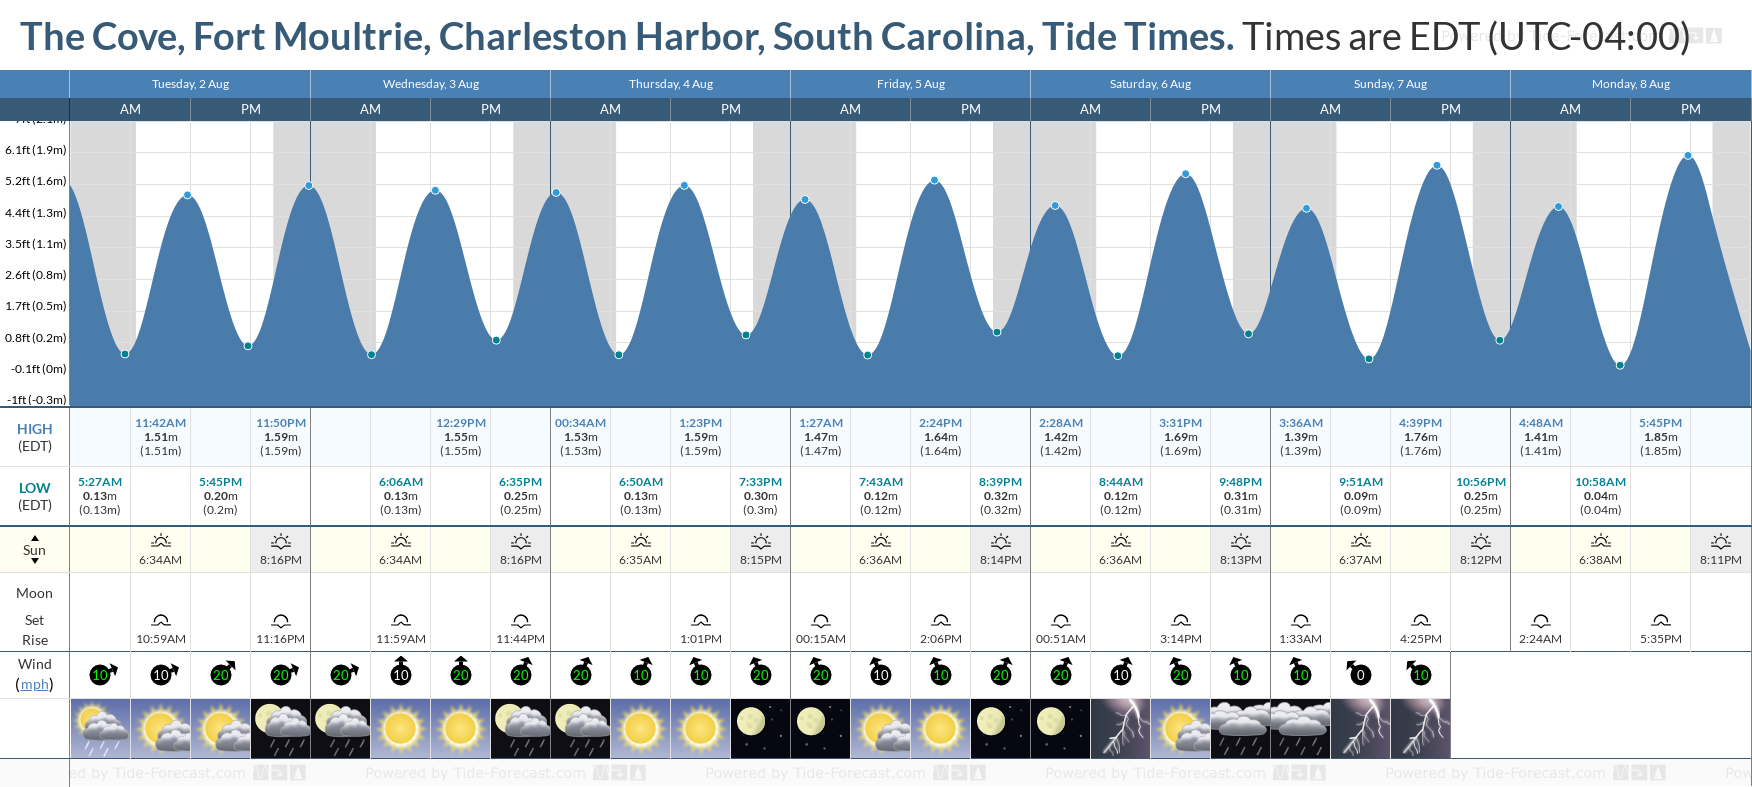 The Cove, Fort Moultrie, Charleston Harbor, South Carolina Tide Chart including high and low tide tide times for the next 7 days